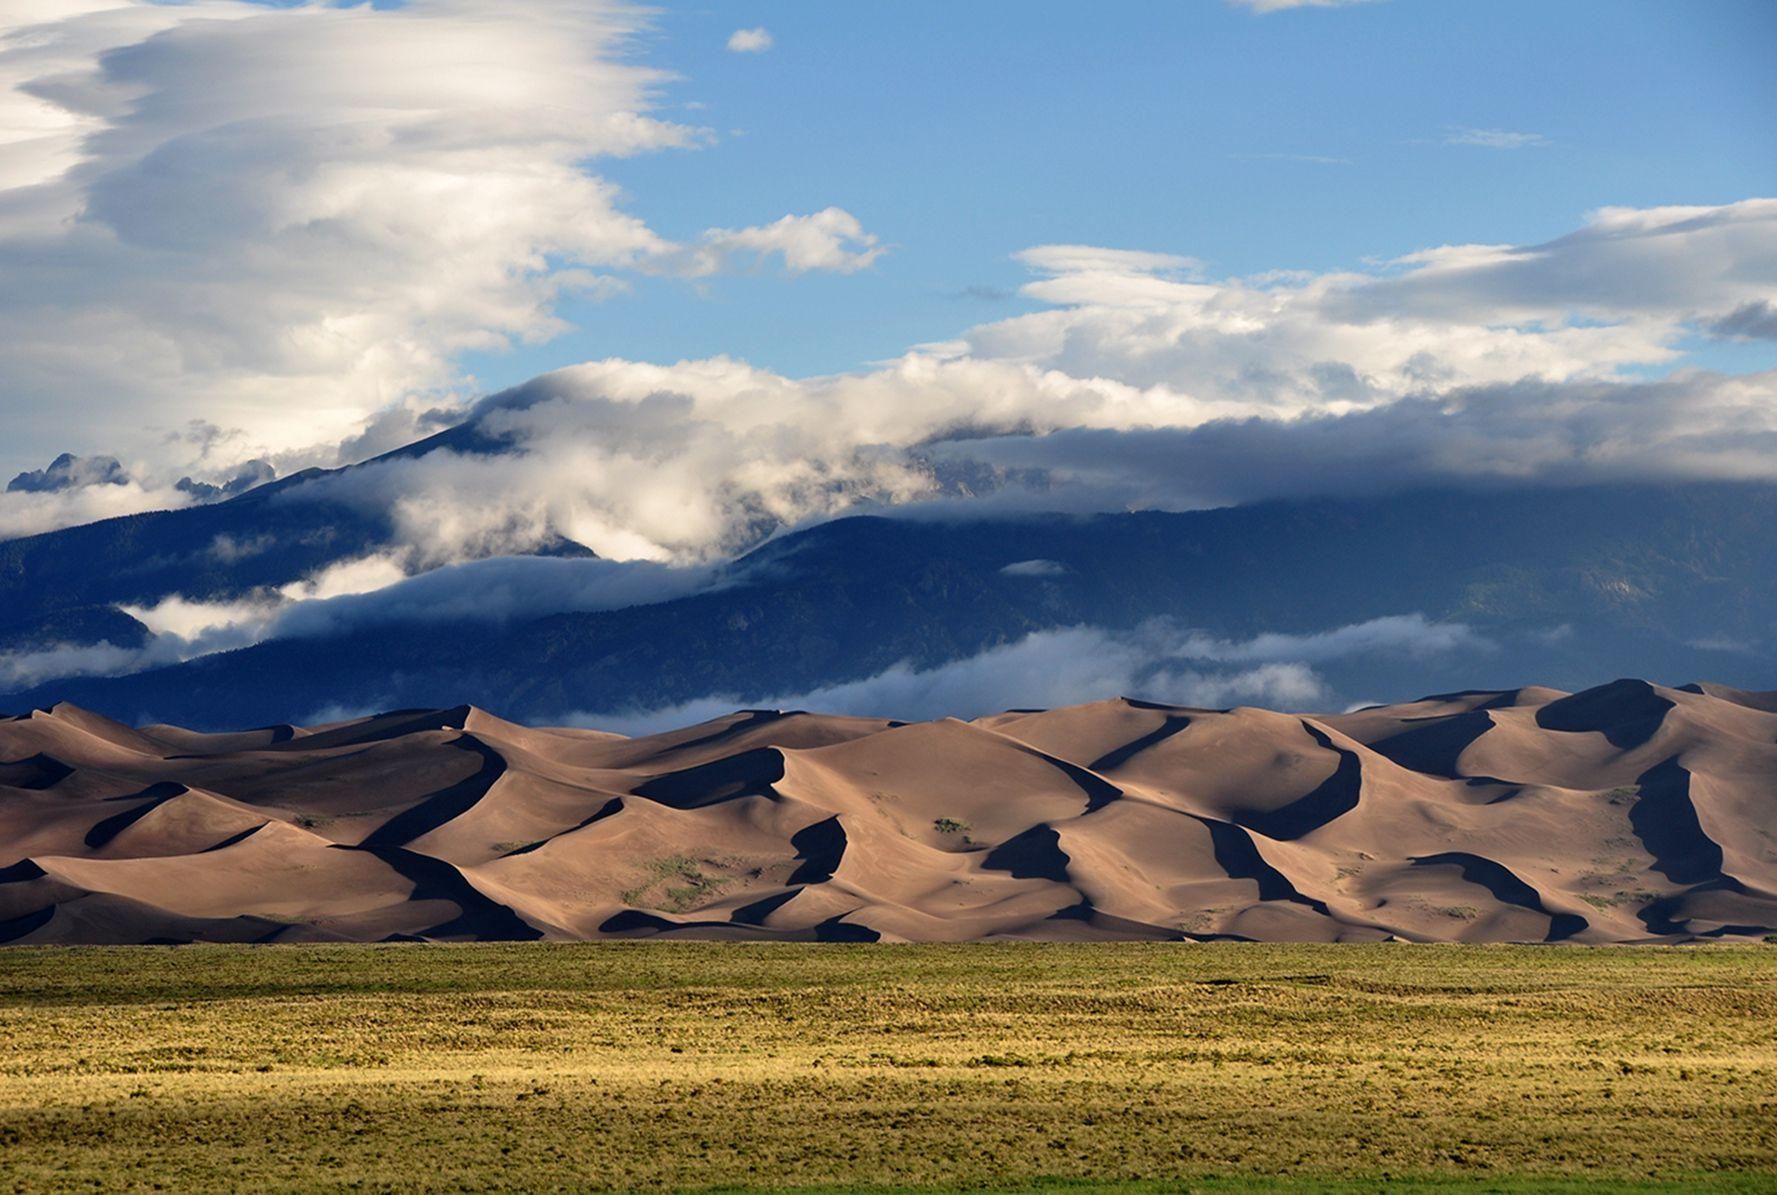 Pure grit called for in Great Sand Dunes National Park